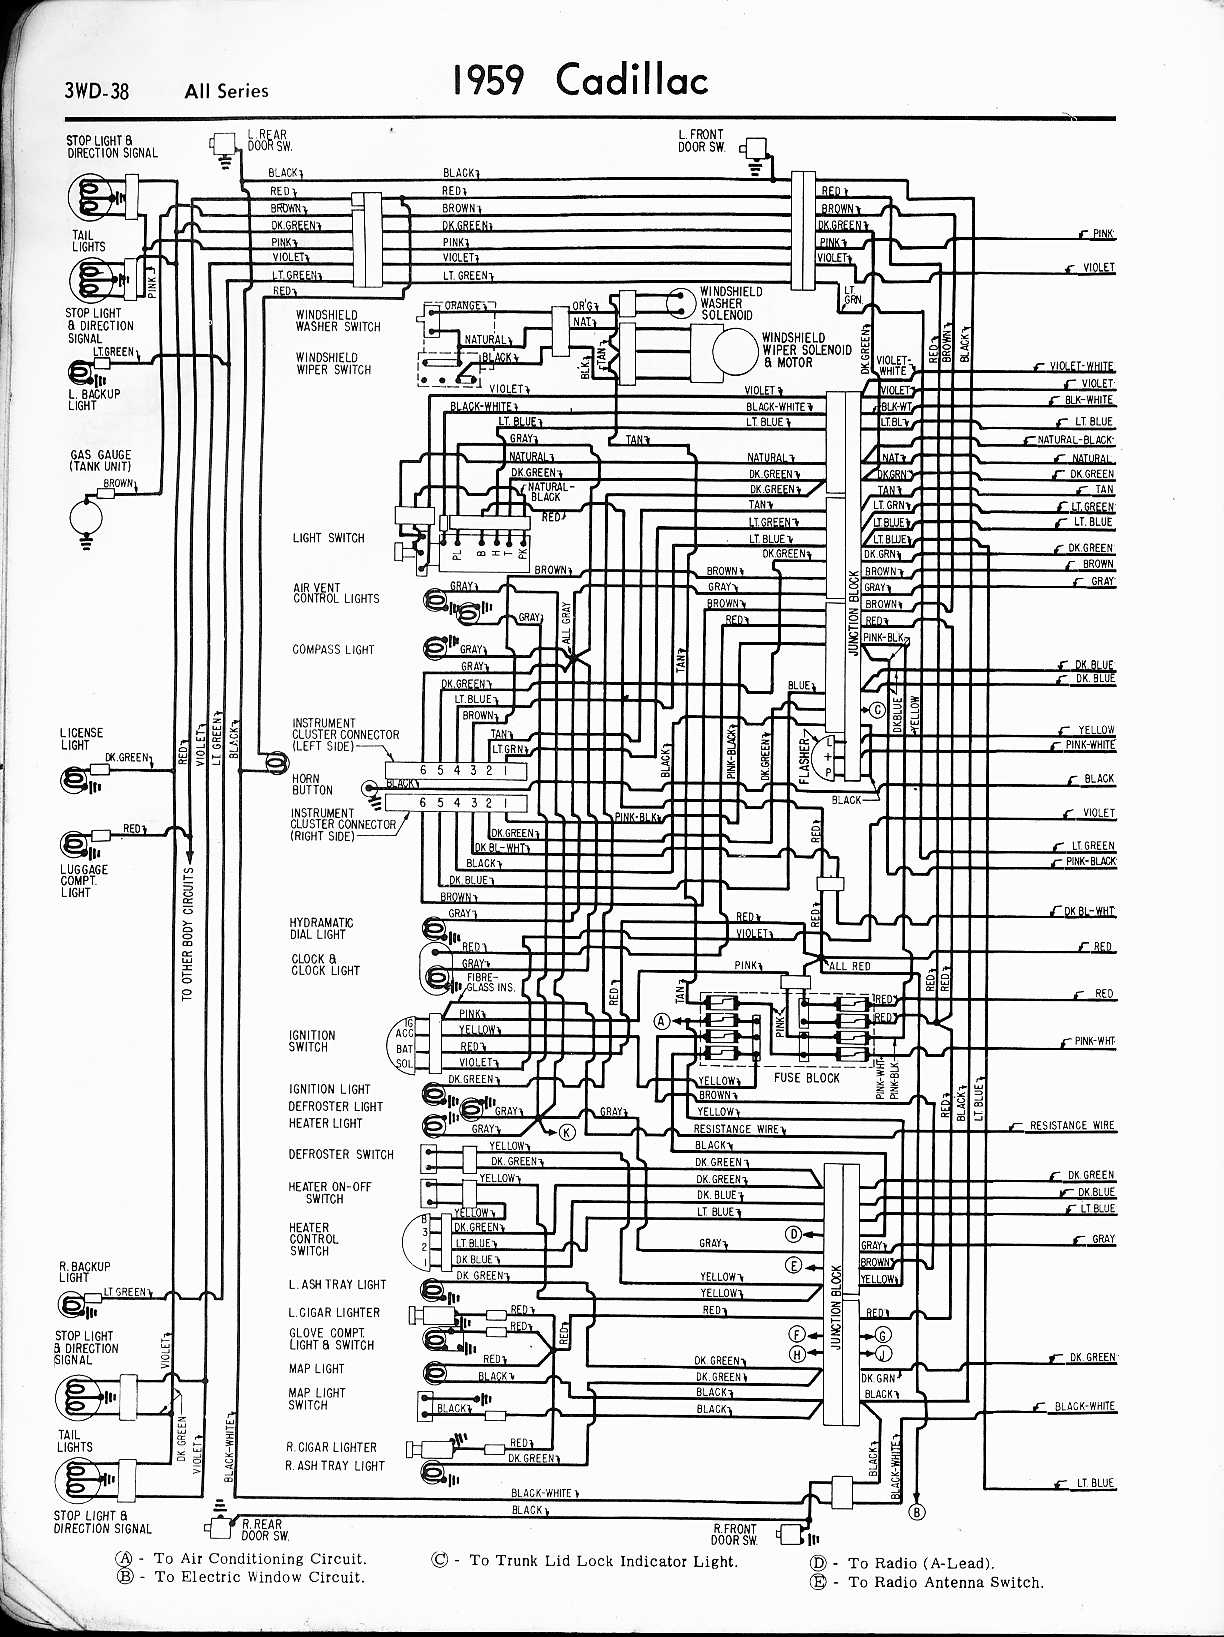 1959 cadillac heater not working rh forums cadillaclasalleclub org 3 Phase Delta Motor Wiring Diagram 3 Phase Delta Motor Wiring Diagram